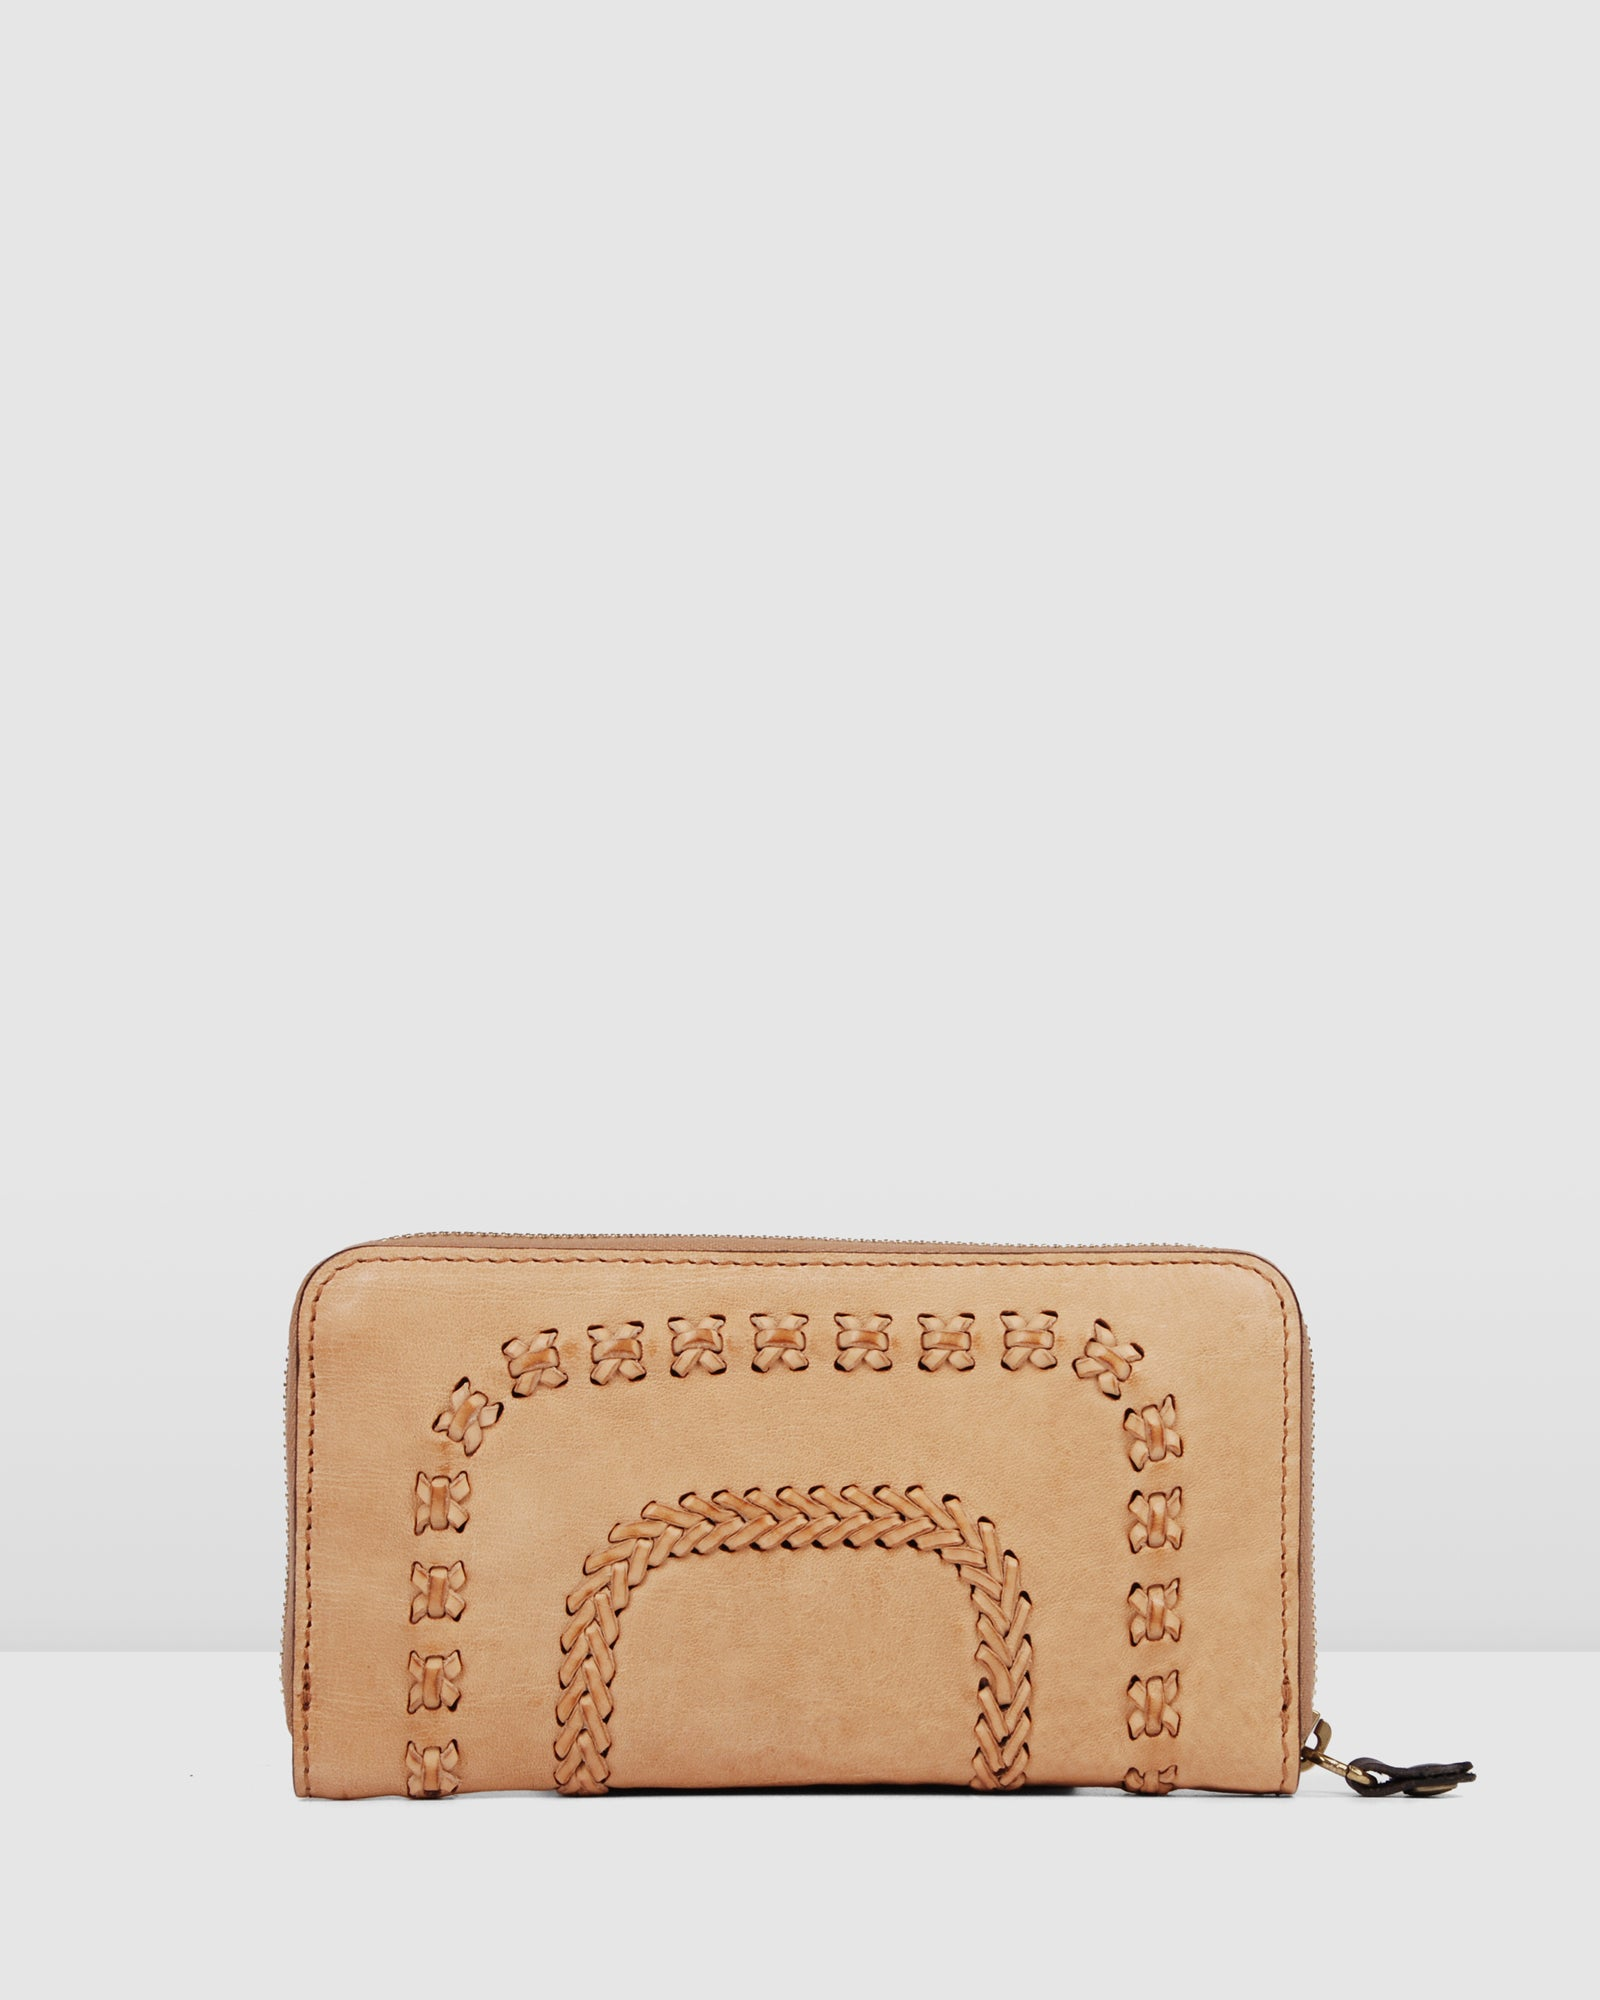 CAMPOMAGGI ATHENS WALLET BEIGE LEATHER